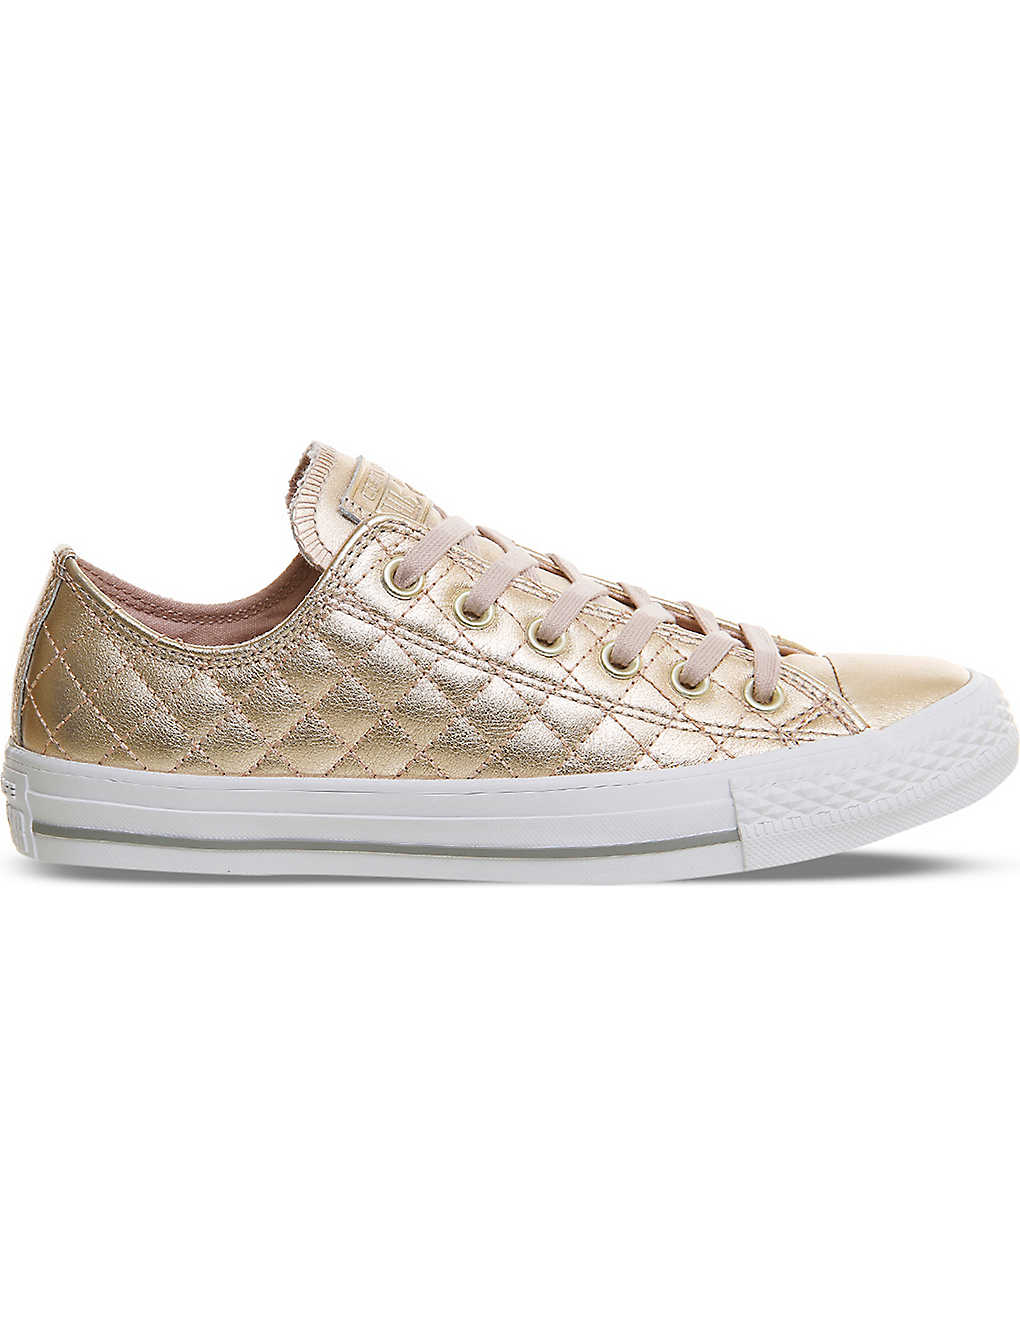 06b25b208c05 CONVERSE - All Star quilted metallic leather trainers